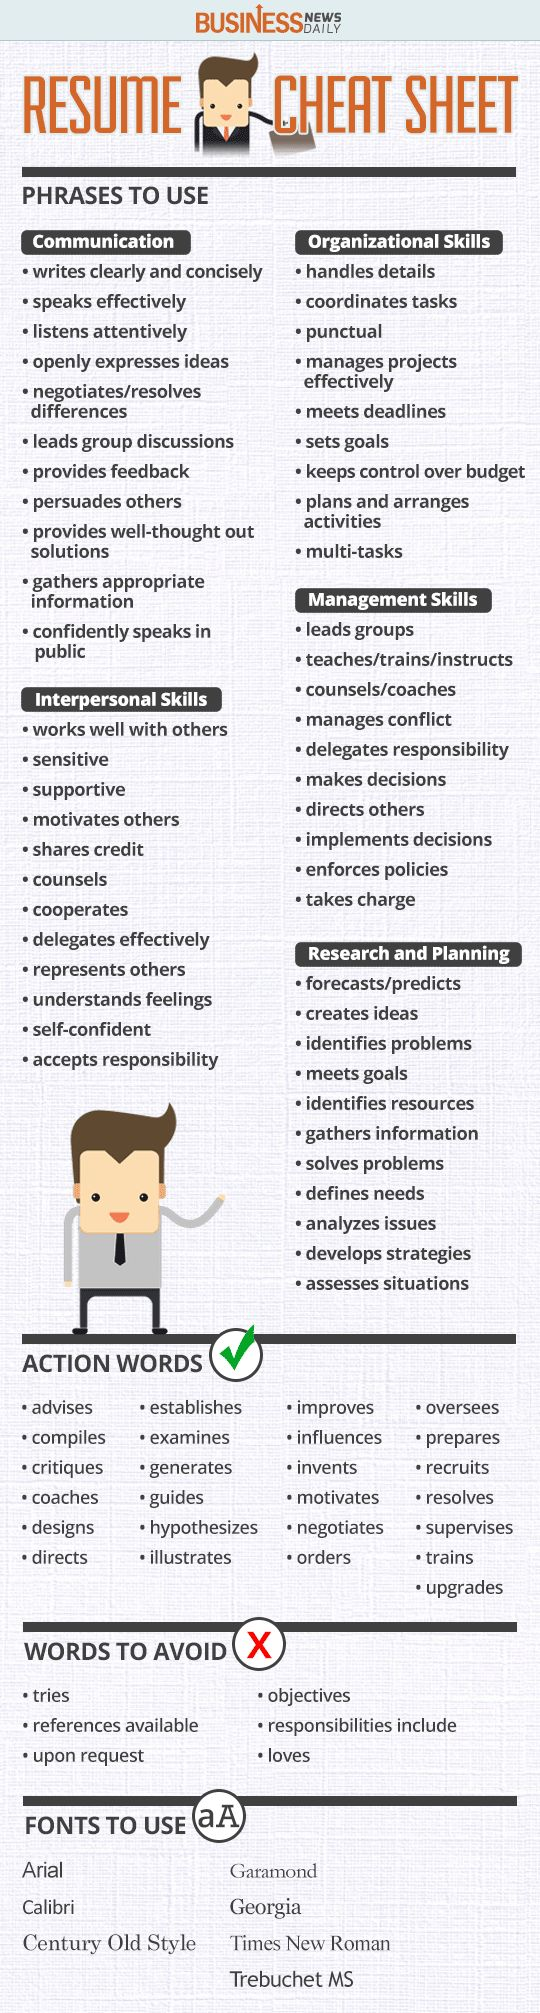 Opposenewapstandardsus  Winning  Ideas About Resume On Pinterest  Cv Format Resume Cv And  With Fascinating Resume Cheat Sheet Infographic Andrews Almost Done With A Complete Unit On Employment Which With Divine Pdf Resume Template Also Resume Profile Summary In Addition Nanny Resume Examples And What Is A Resume For A Job As Well As Resume Templates For Pages Additionally Action Words Resume From Pinterestcom With Opposenewapstandardsus  Fascinating  Ideas About Resume On Pinterest  Cv Format Resume Cv And  With Divine Resume Cheat Sheet Infographic Andrews Almost Done With A Complete Unit On Employment Which And Winning Pdf Resume Template Also Resume Profile Summary In Addition Nanny Resume Examples From Pinterestcom